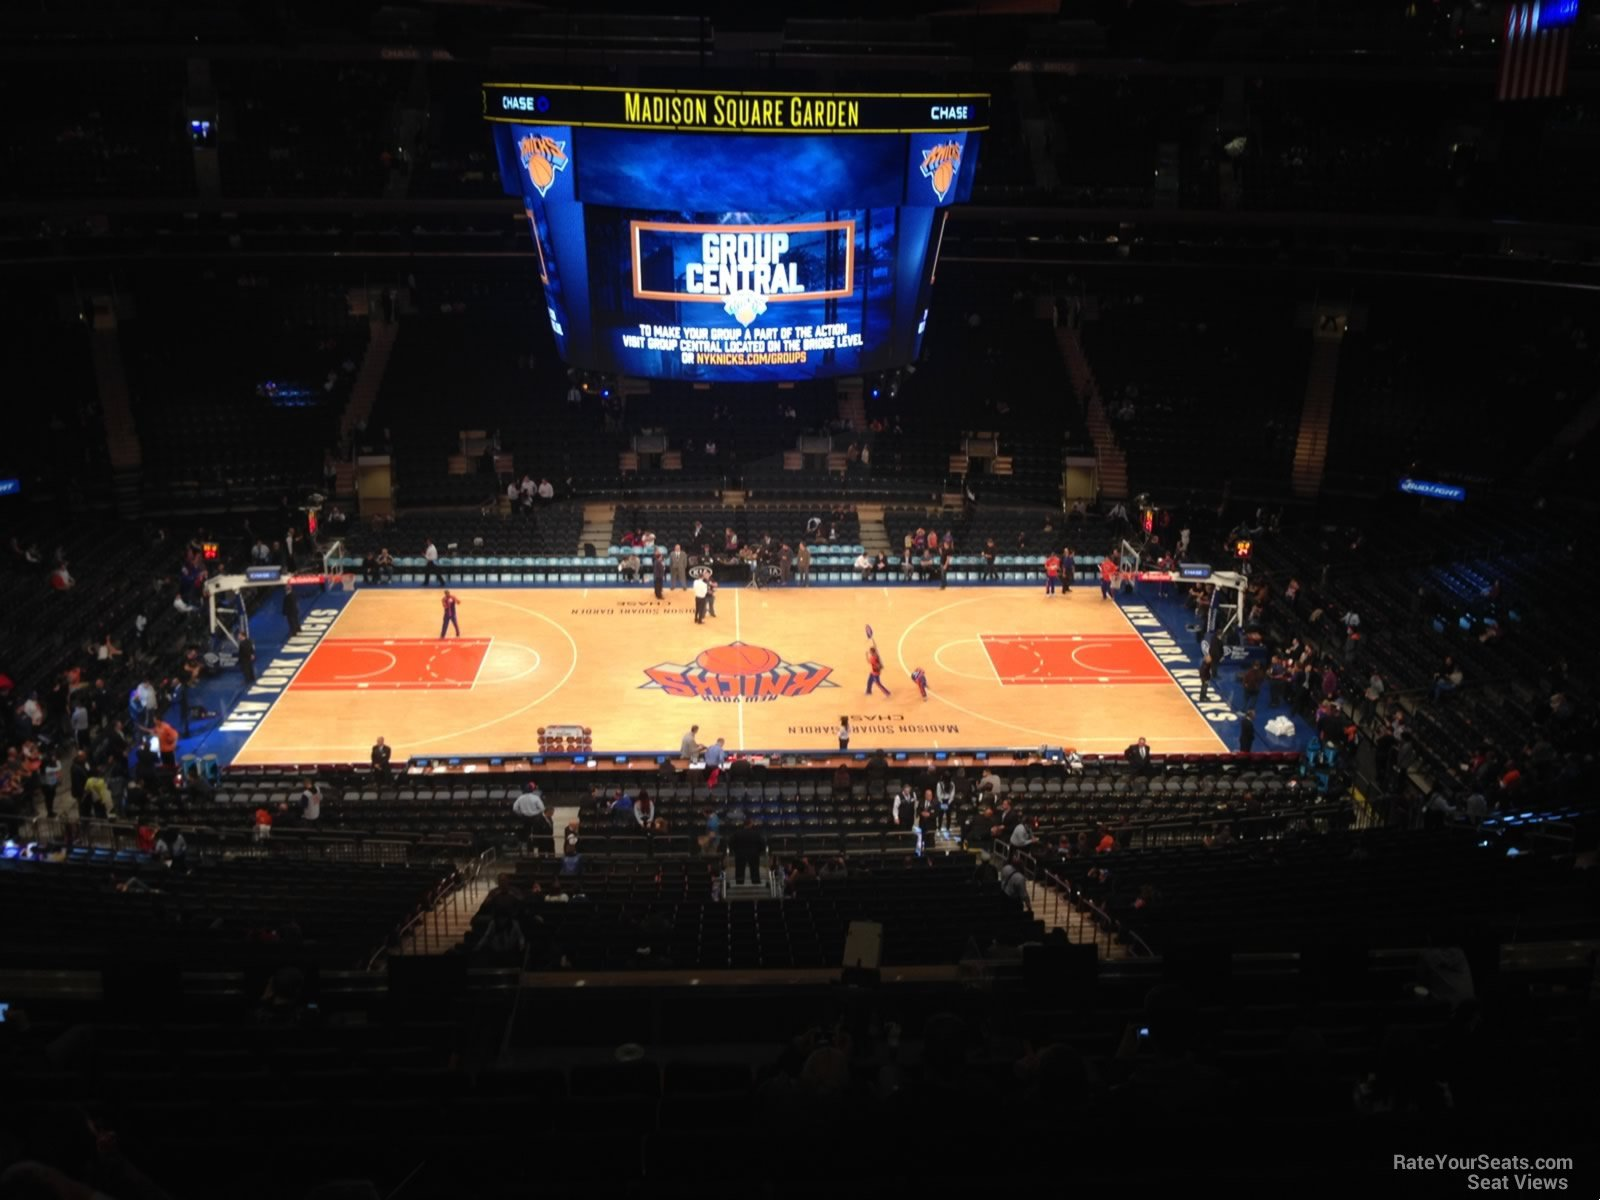 Madison square garden section 211 new york knicks Madison square garden basketball